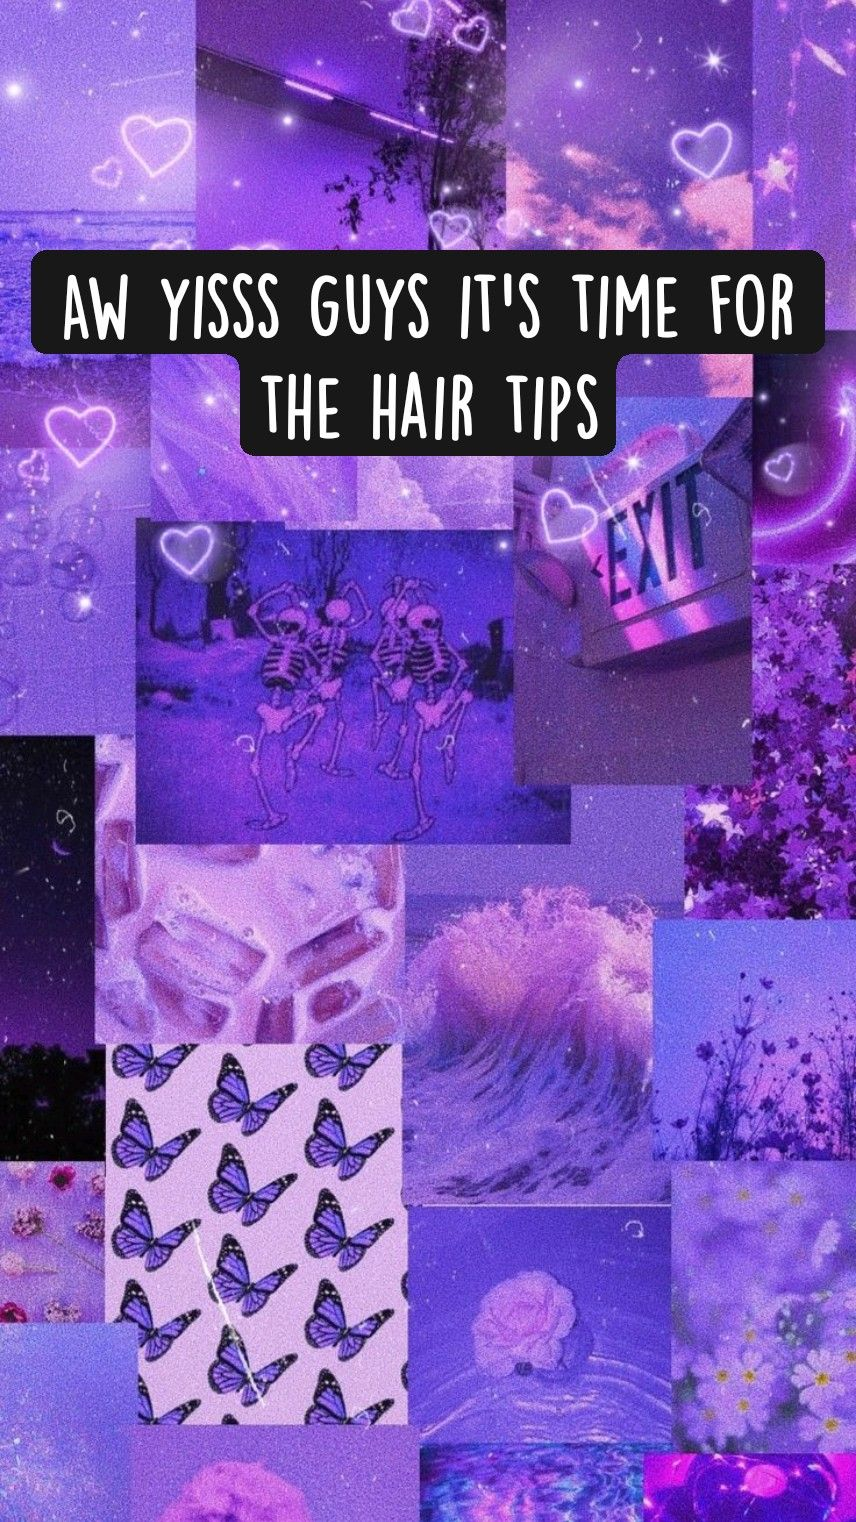 Aw yisss guys it's time for the hair tips